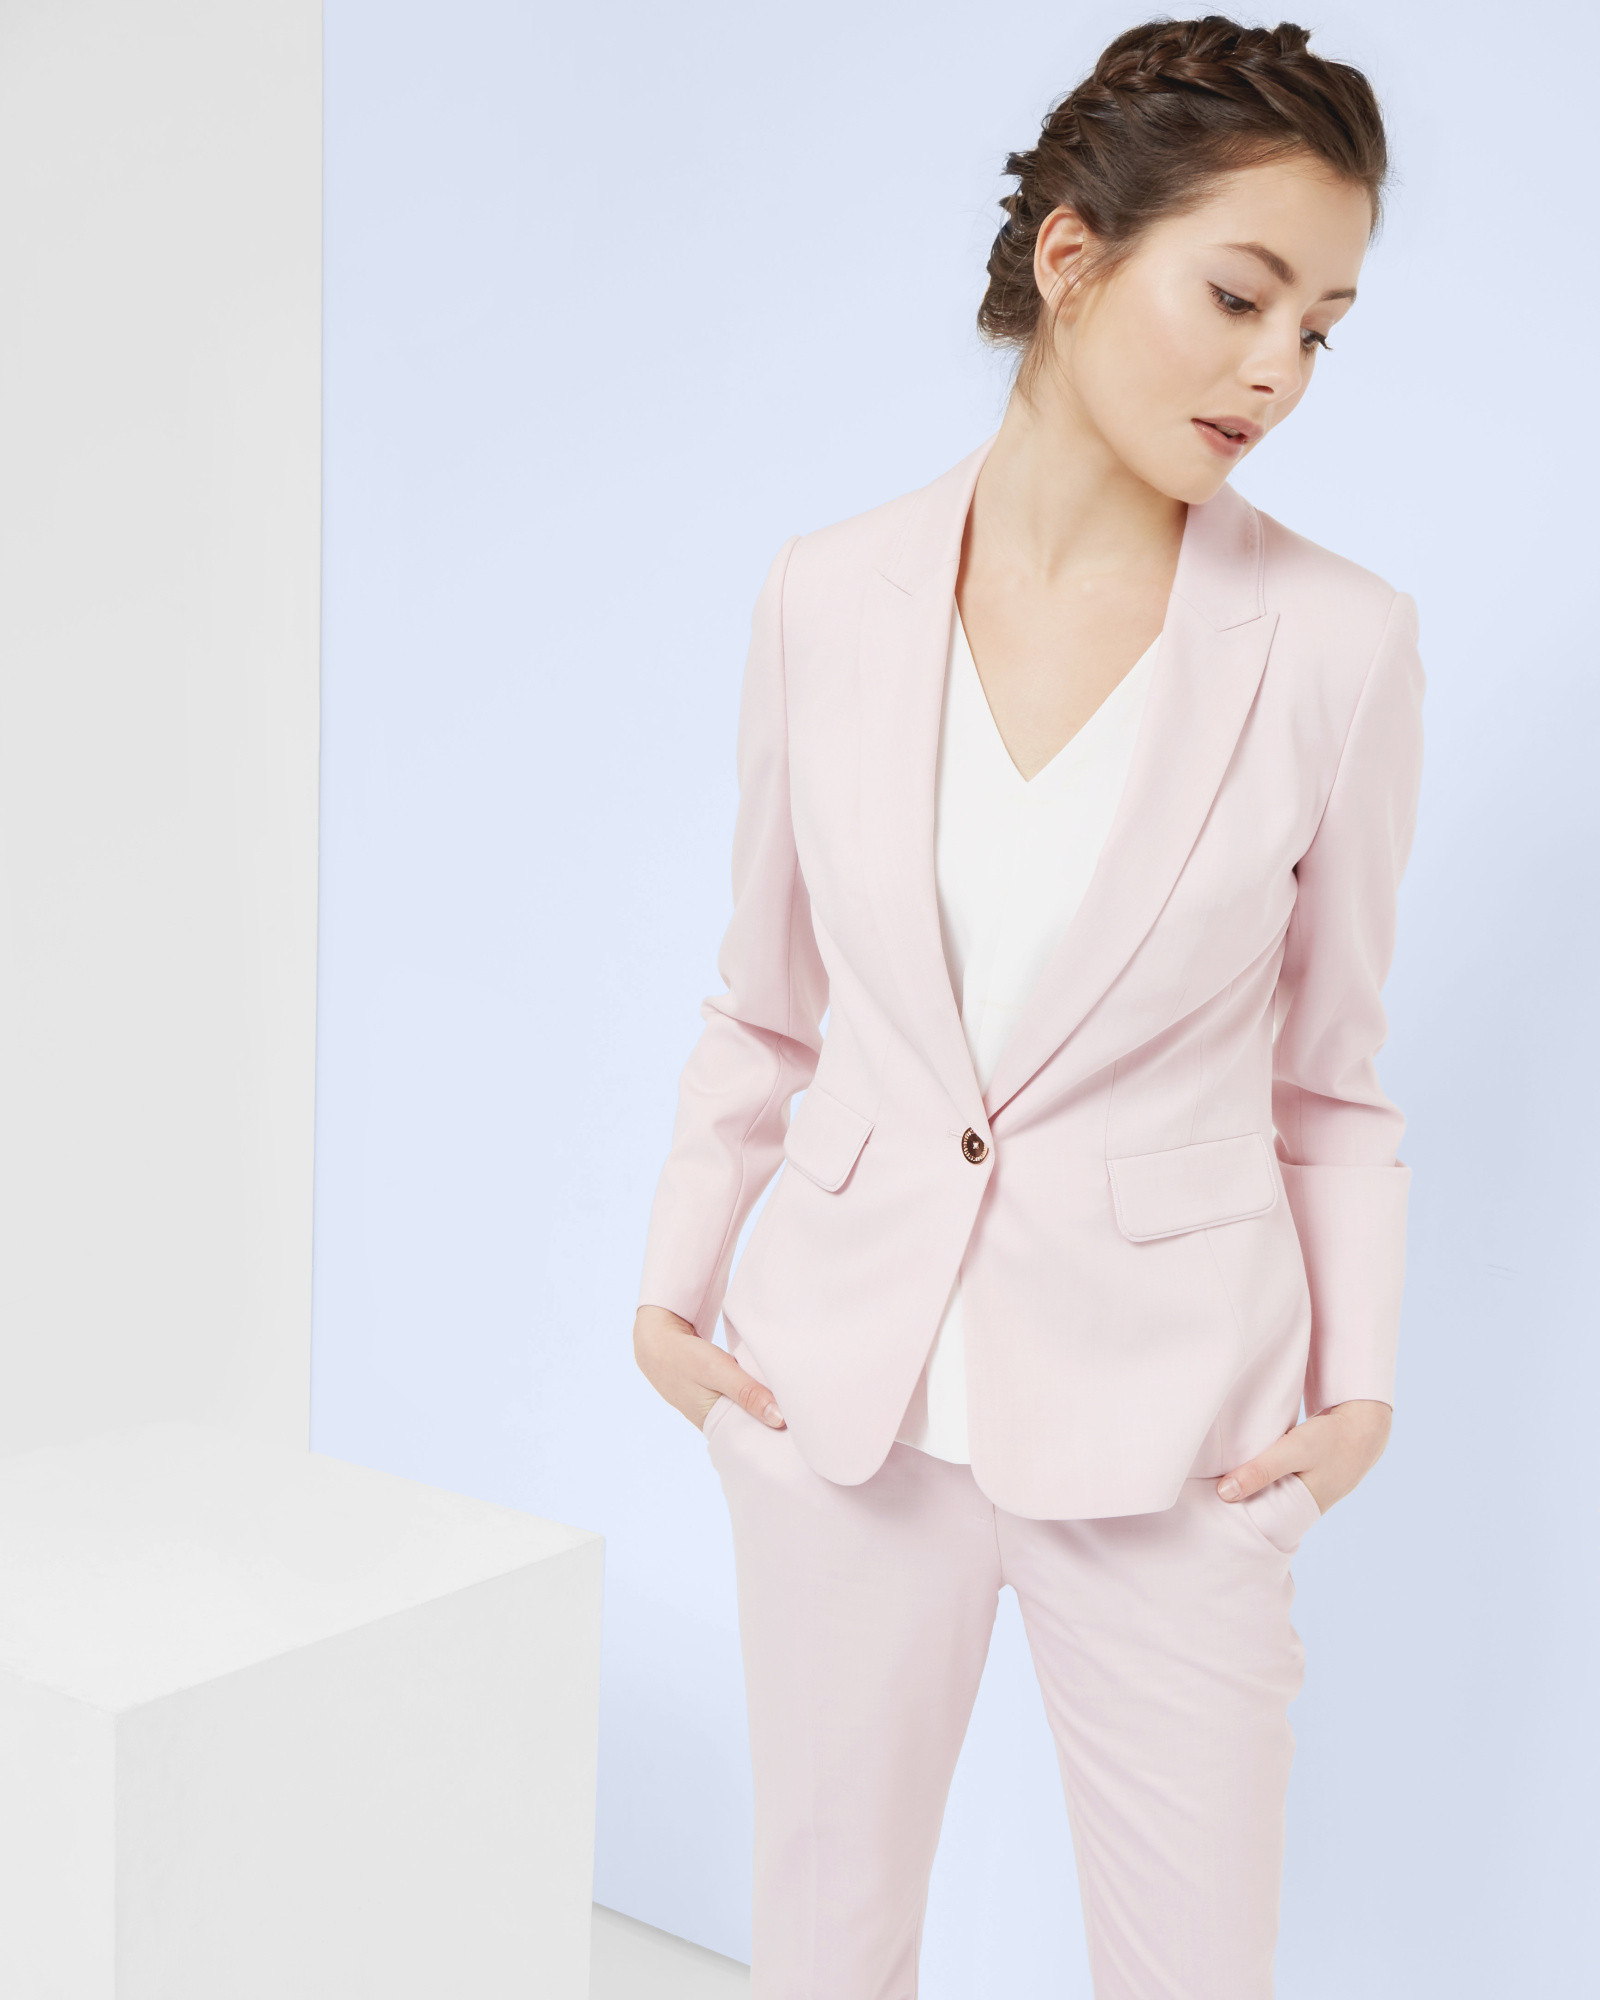 5b4d147223912 Lyst - Ted Baker Pastel Tailored Jacket in Pink